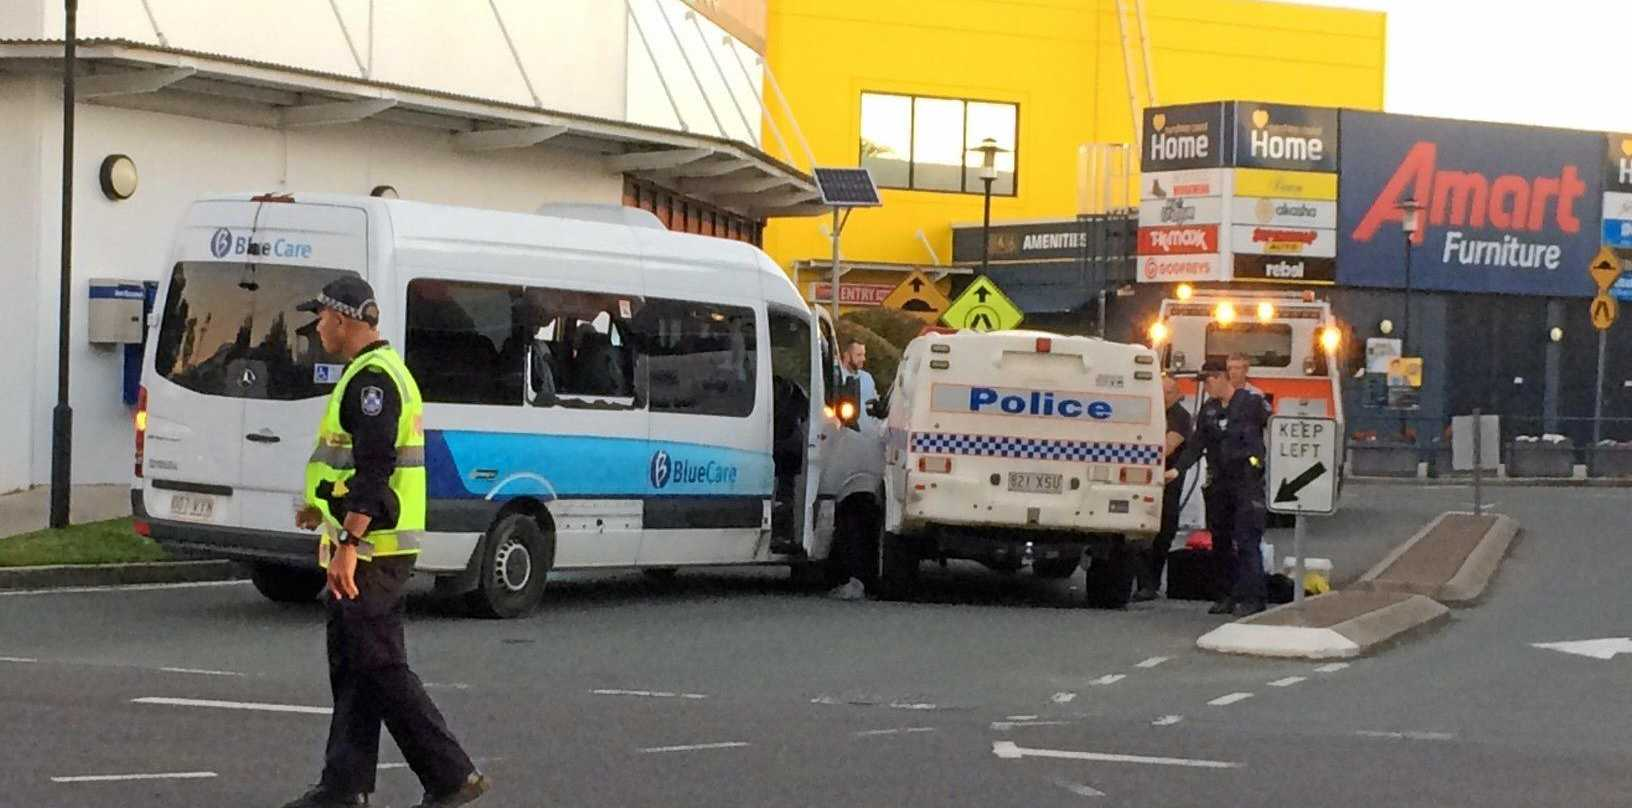 Two people in a stolen Blue Care bus have led police on a high-speed chase across Maroochydore before crashing into a police car this afternoon.